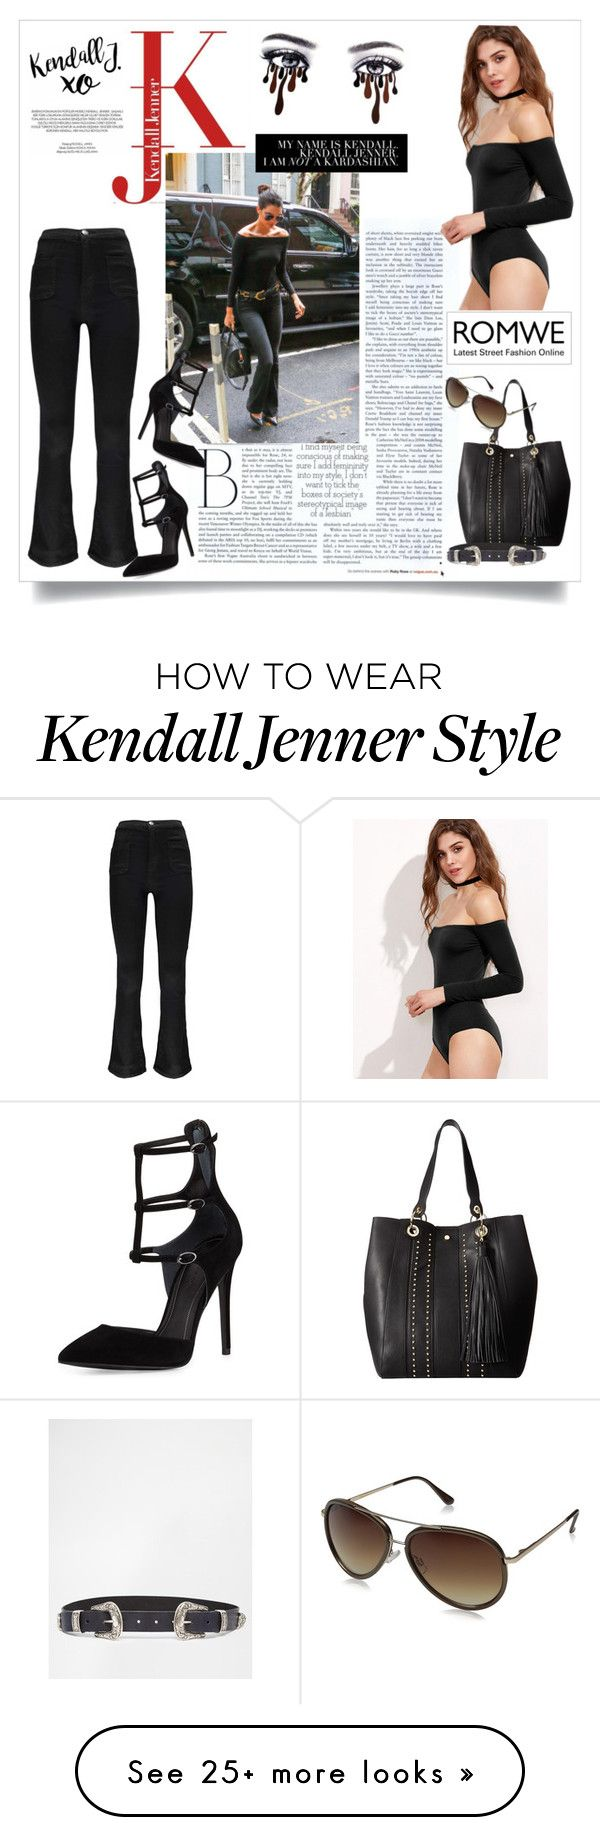 634 Best Images About Kendall Jenner Style On Pinterest Woman Clothing Stella Mccartney And